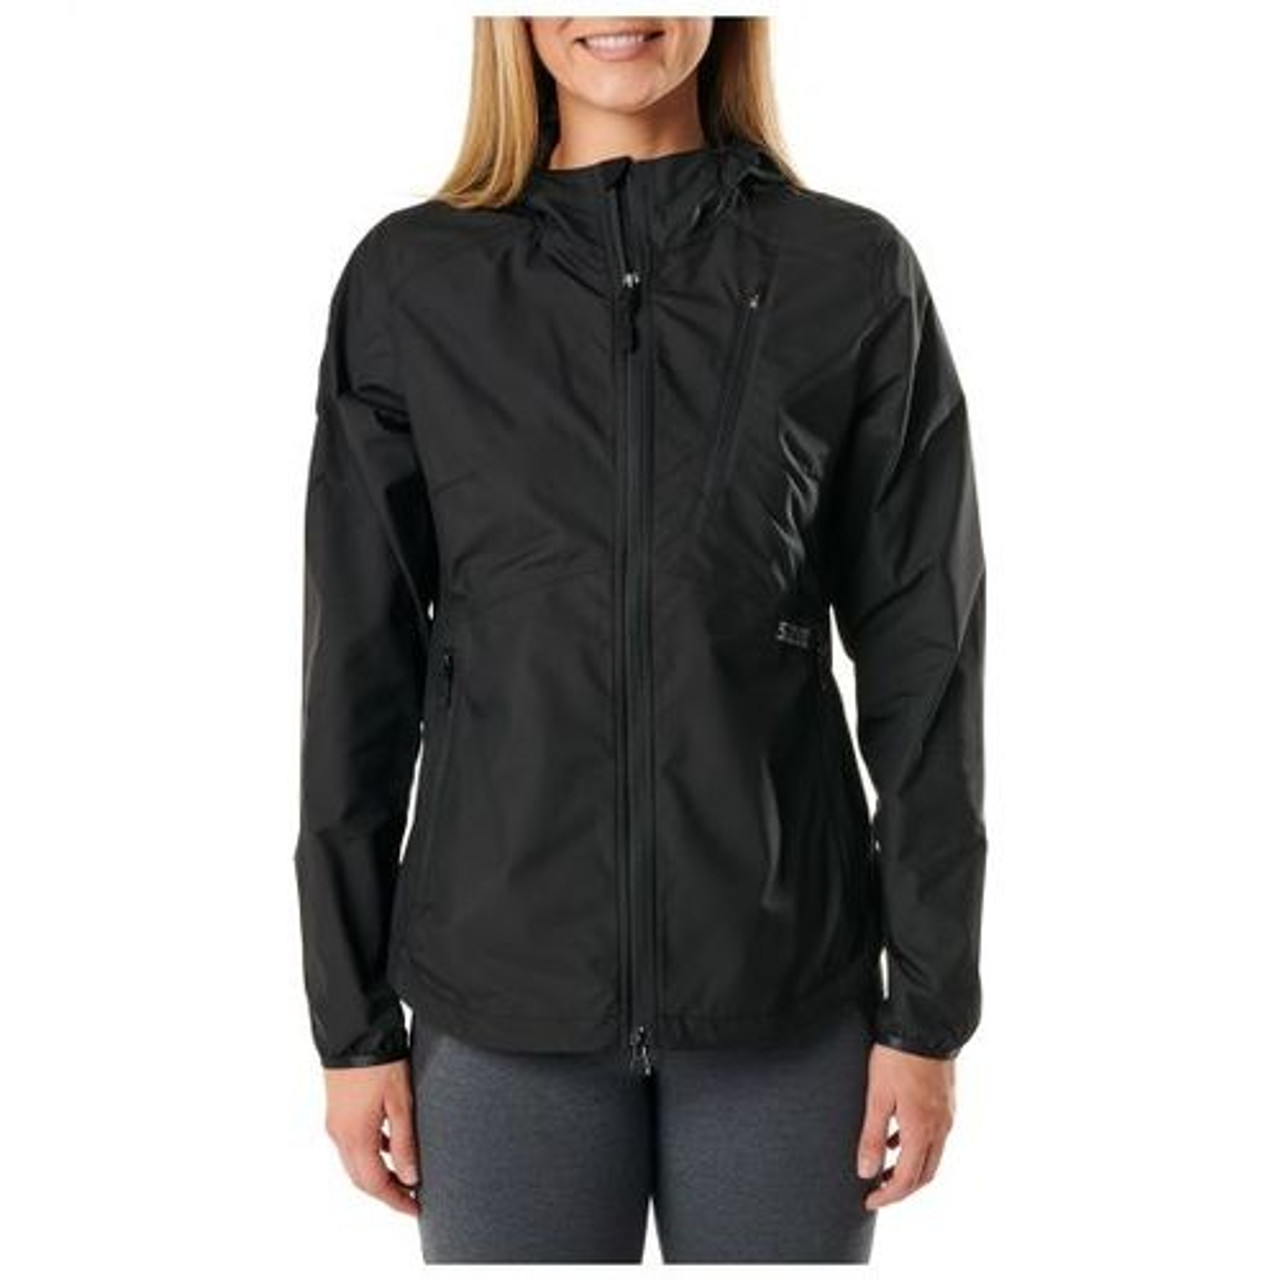 5.11 Tactical 38075 WOMEN'S CASCADIA WINDBREAKER PACKABLE JACKET, Venting at Upper Back Body, Packable Chest Pocket With Hanger Internal Loop